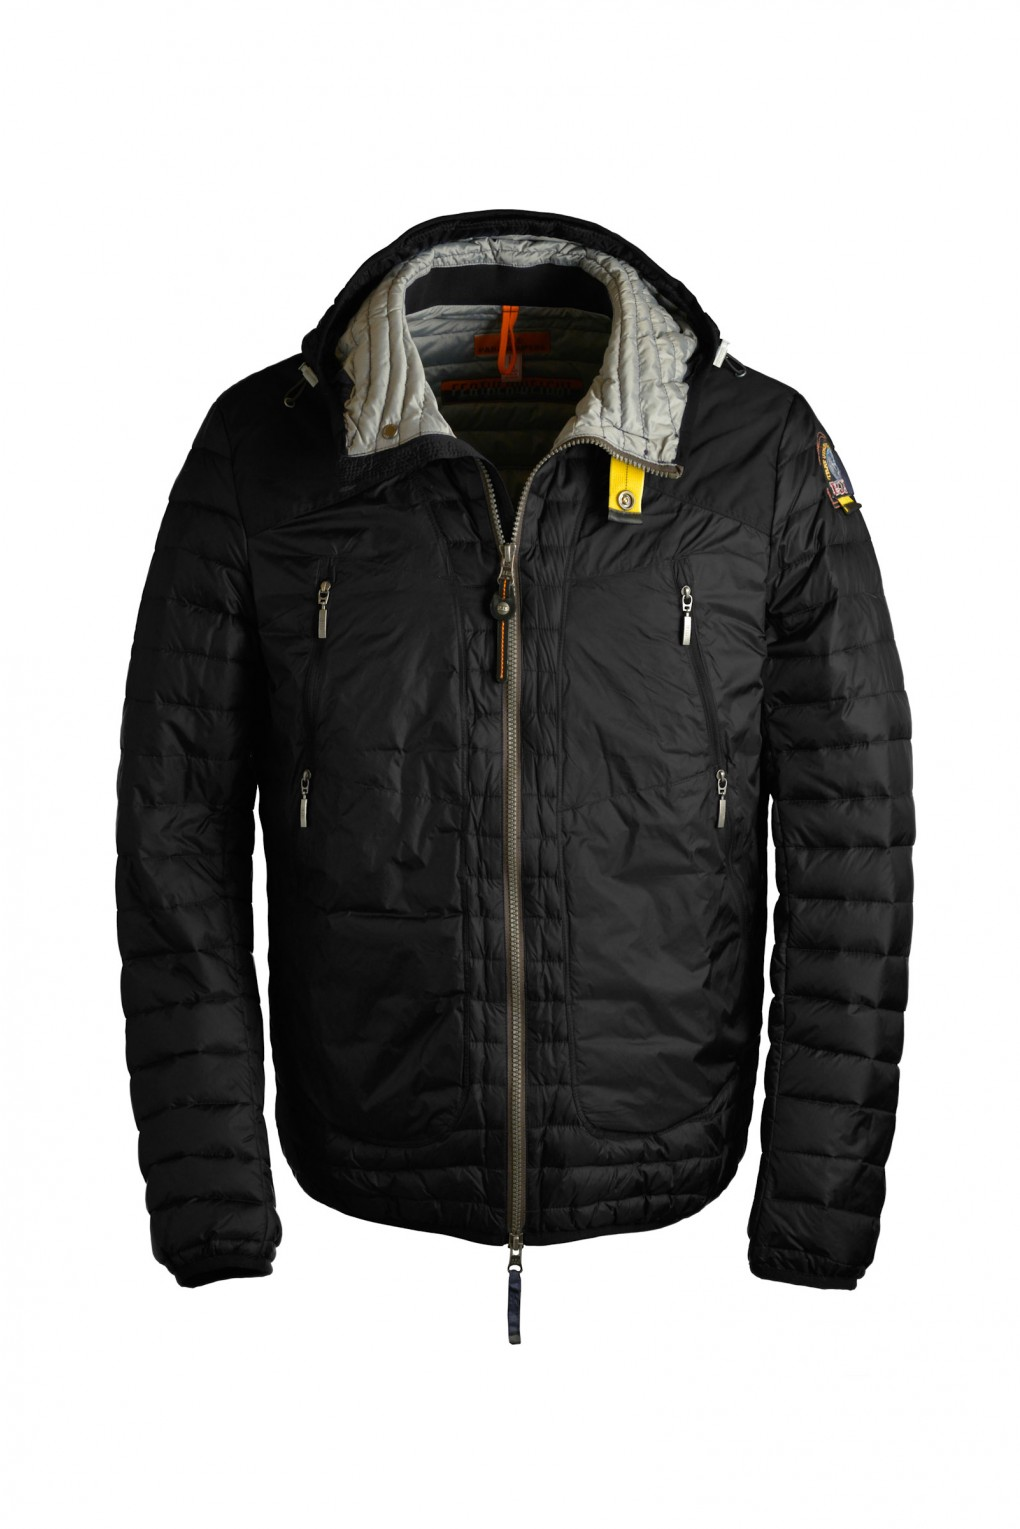 parajumpers ROBY man outerwear Black